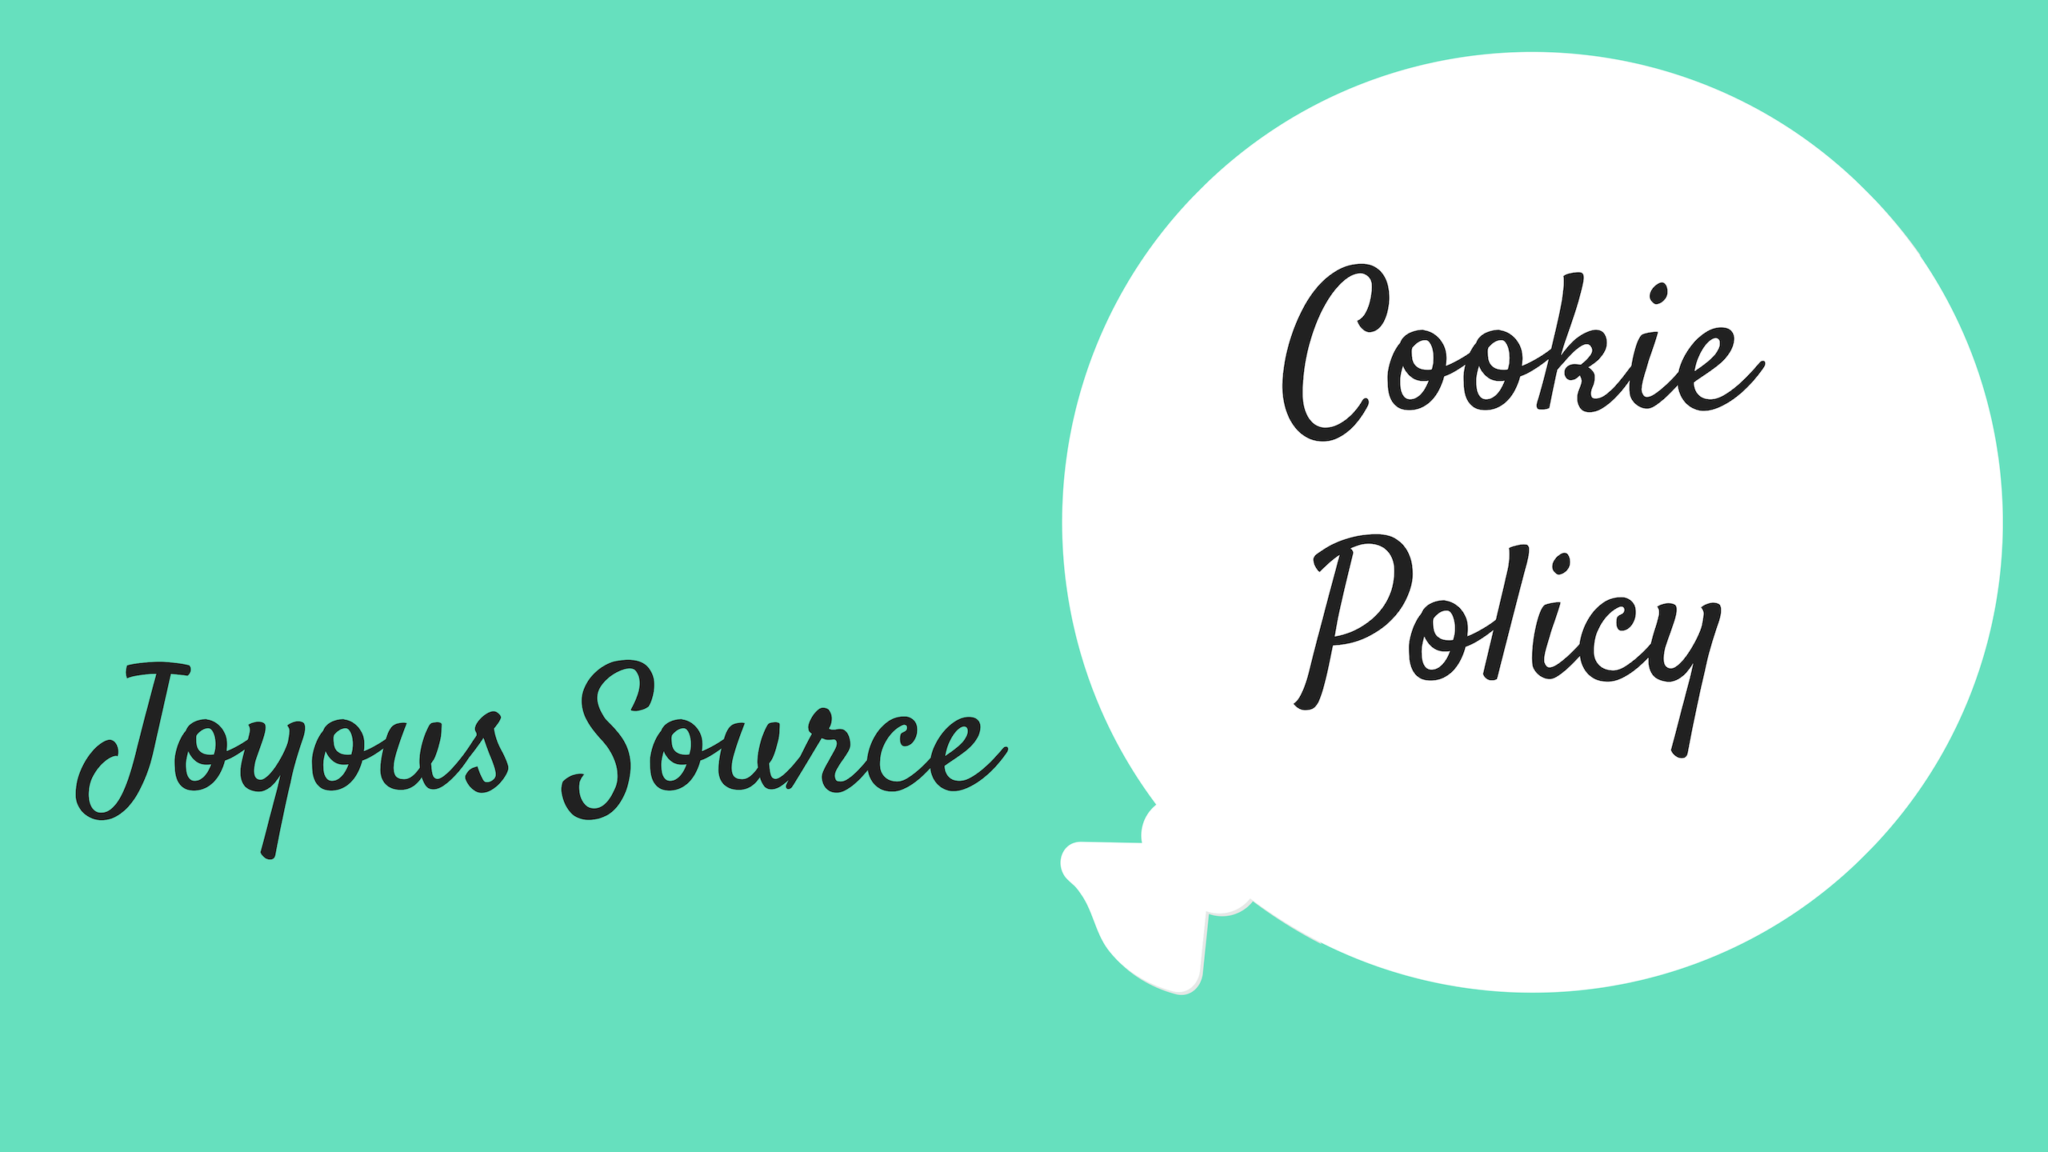 Joyous source cookie policy